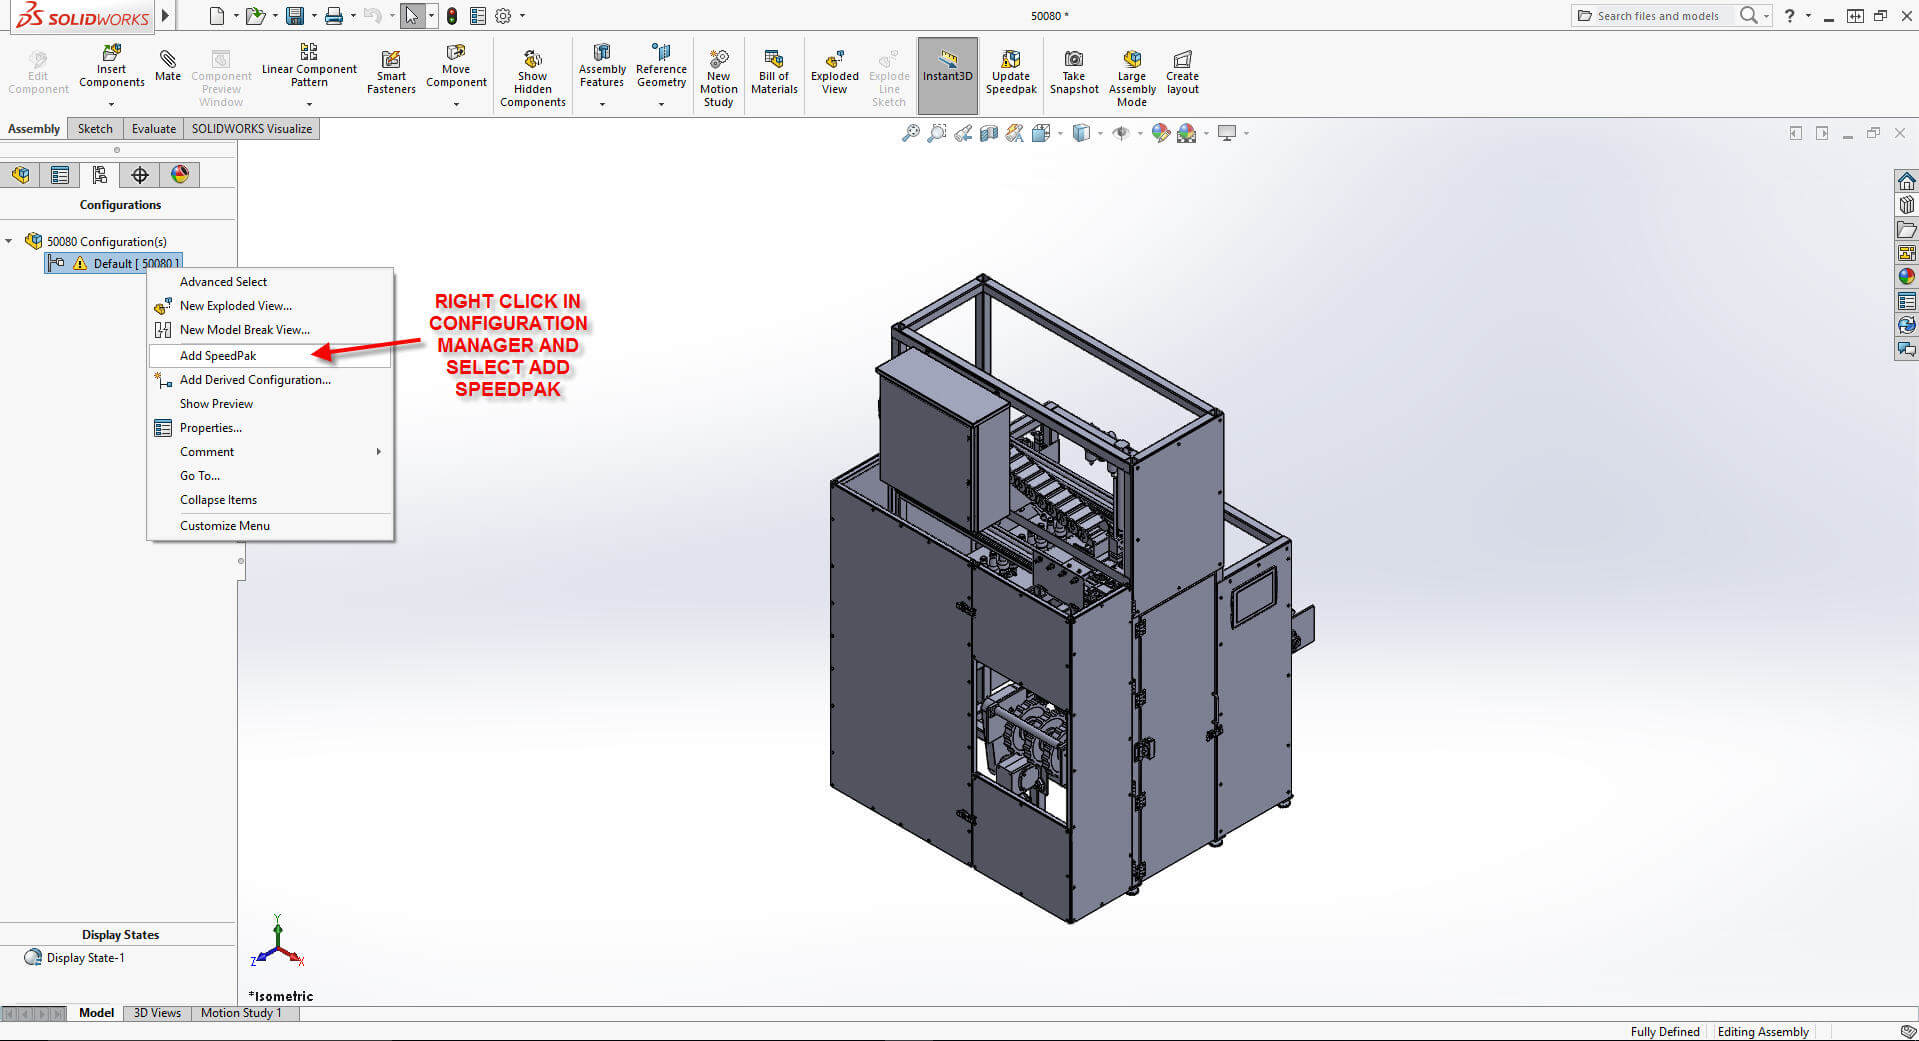 how to increase solidworks performance when using vendor models